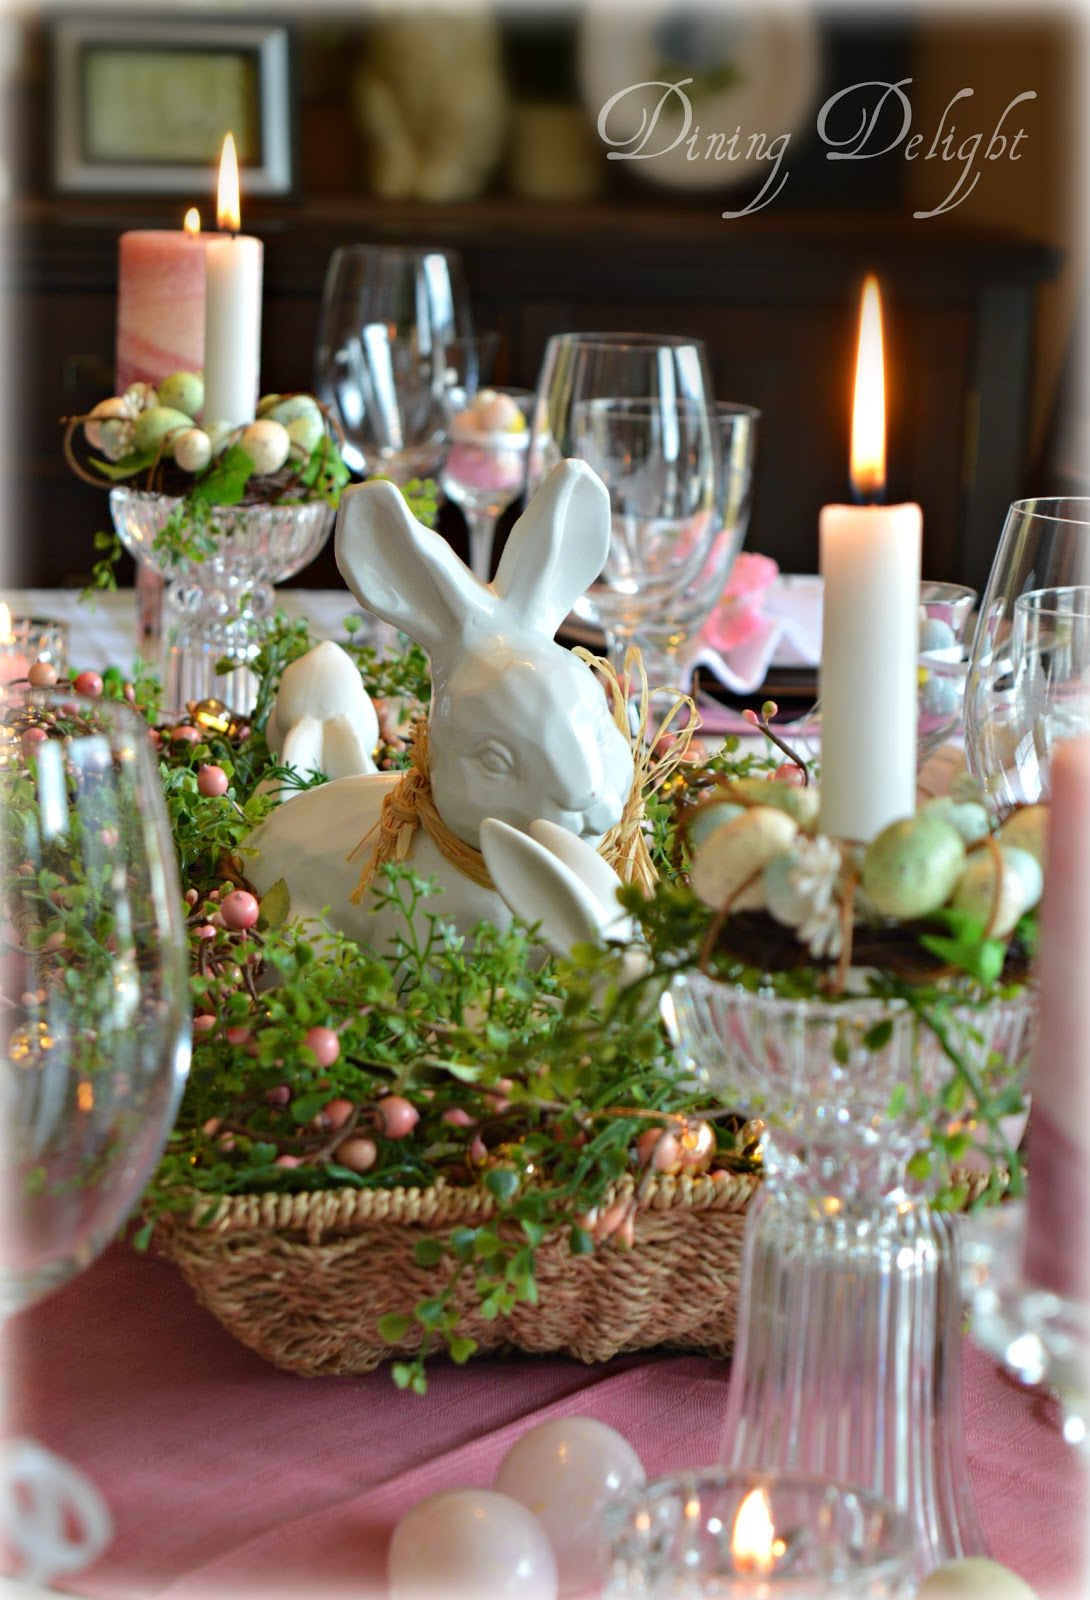 Dining Delight: Pink & White Easter Tablescape